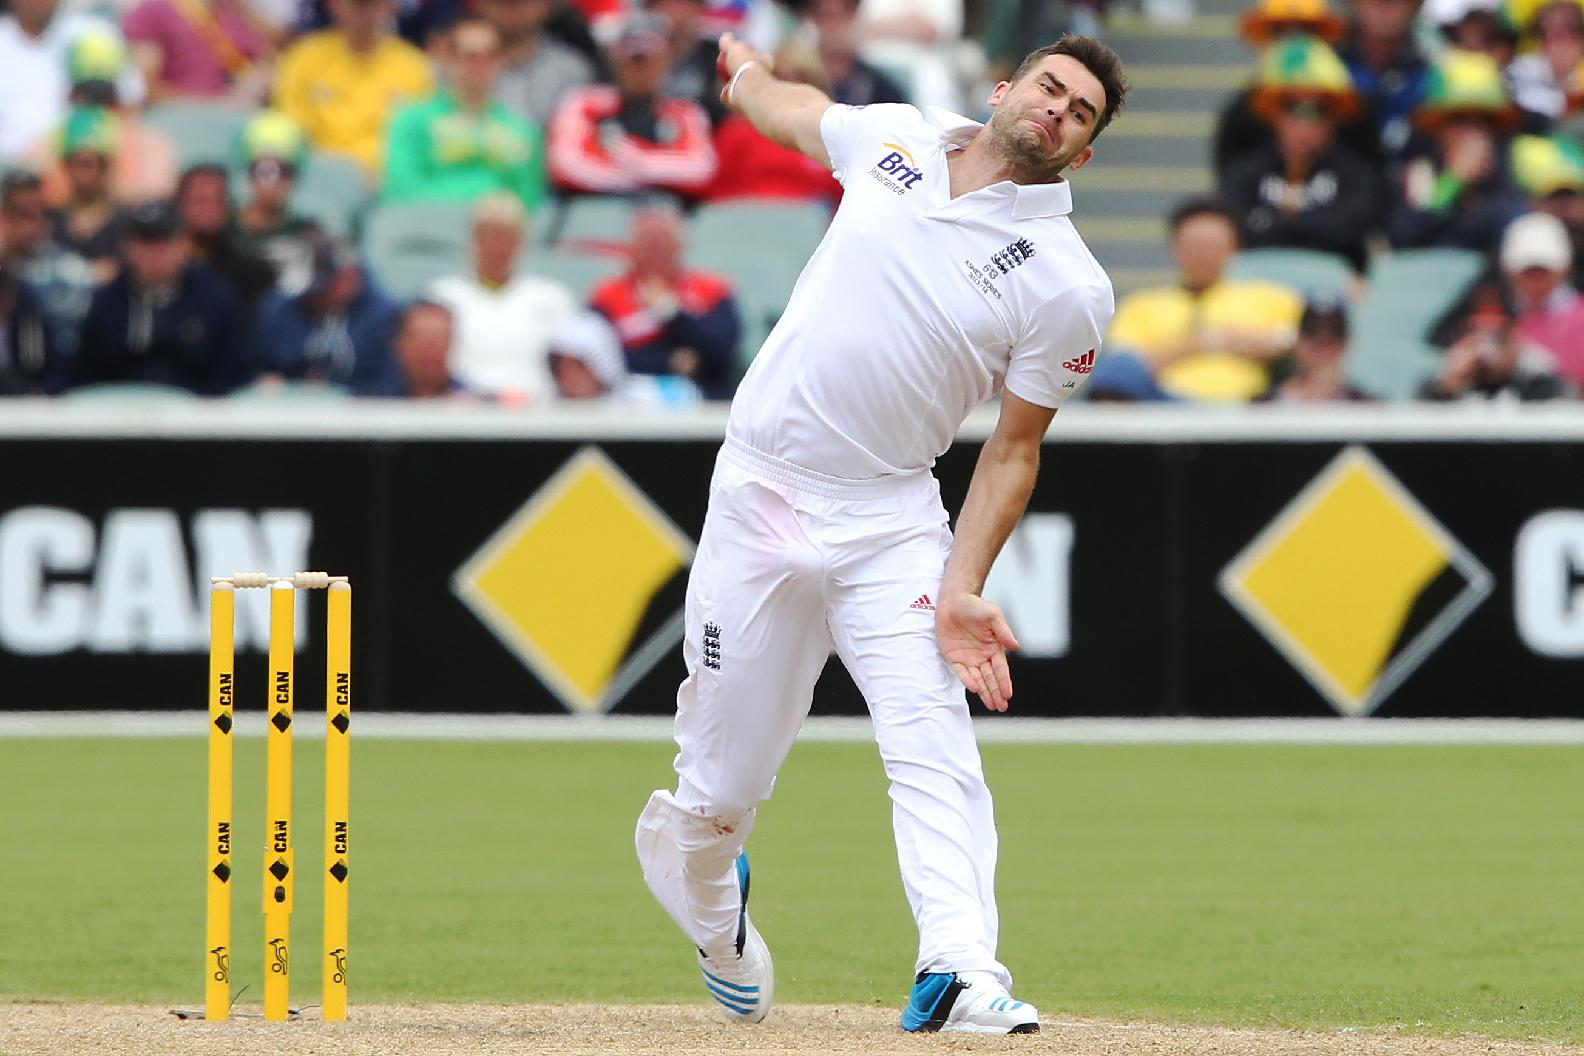 England's James Anderson bowls during the second Ashes cricket test match between England and Australia, in Adelaide, Australia, Thursday, Dec. 5, 2013